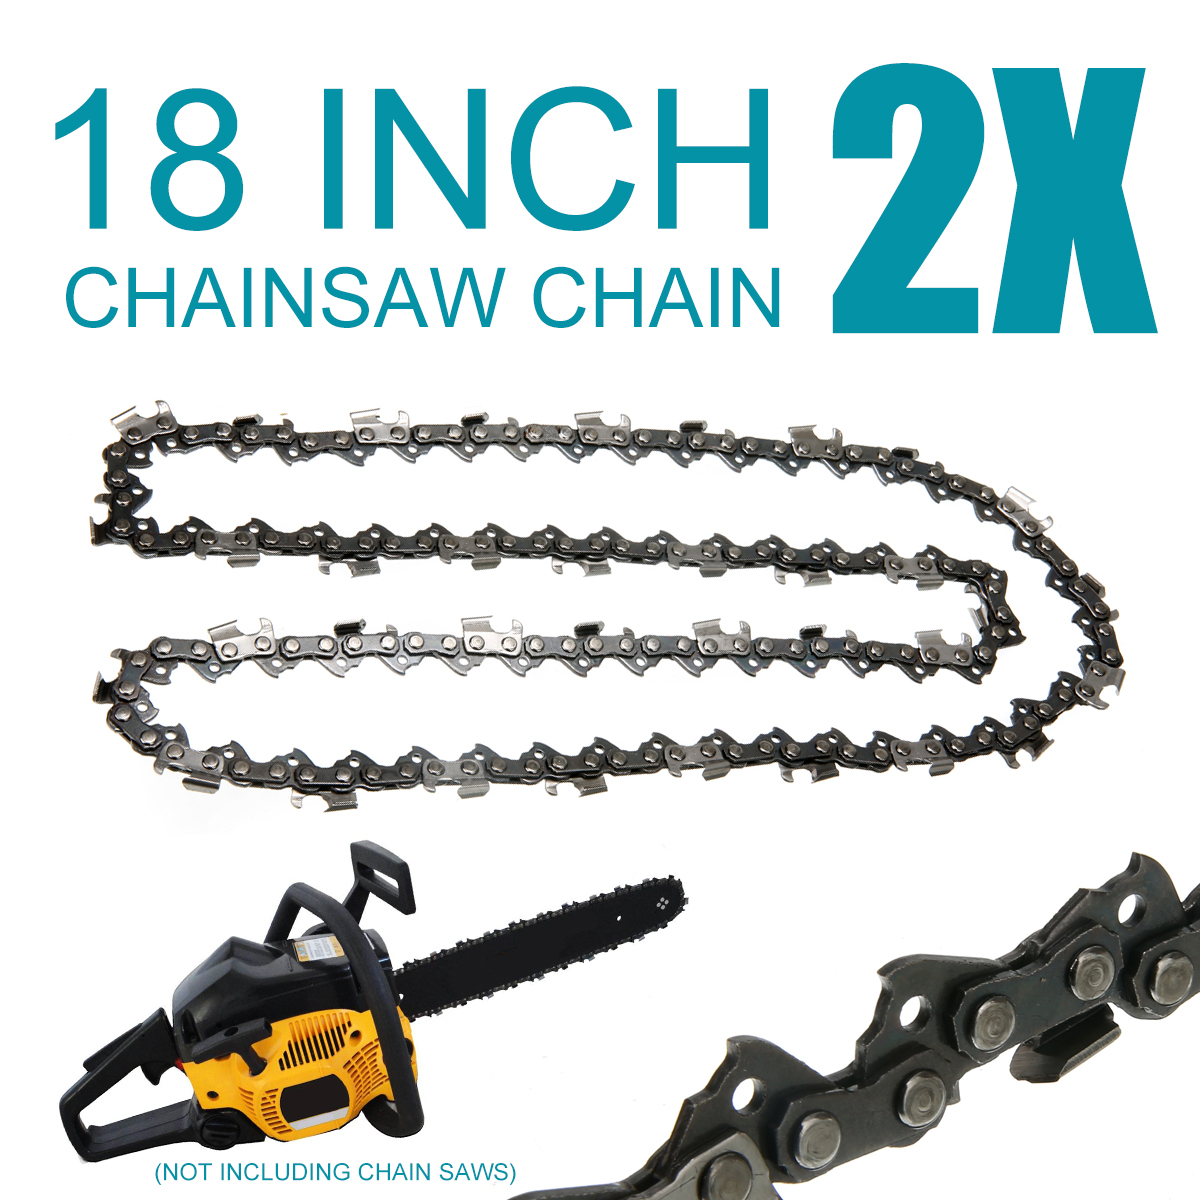 """Mayitr 2pcs 18 inch Chainsaw Saw Chain Blade Pitch .325 """" 0.058 Gauge 72DL Replacement Chain Hardware Tools"""